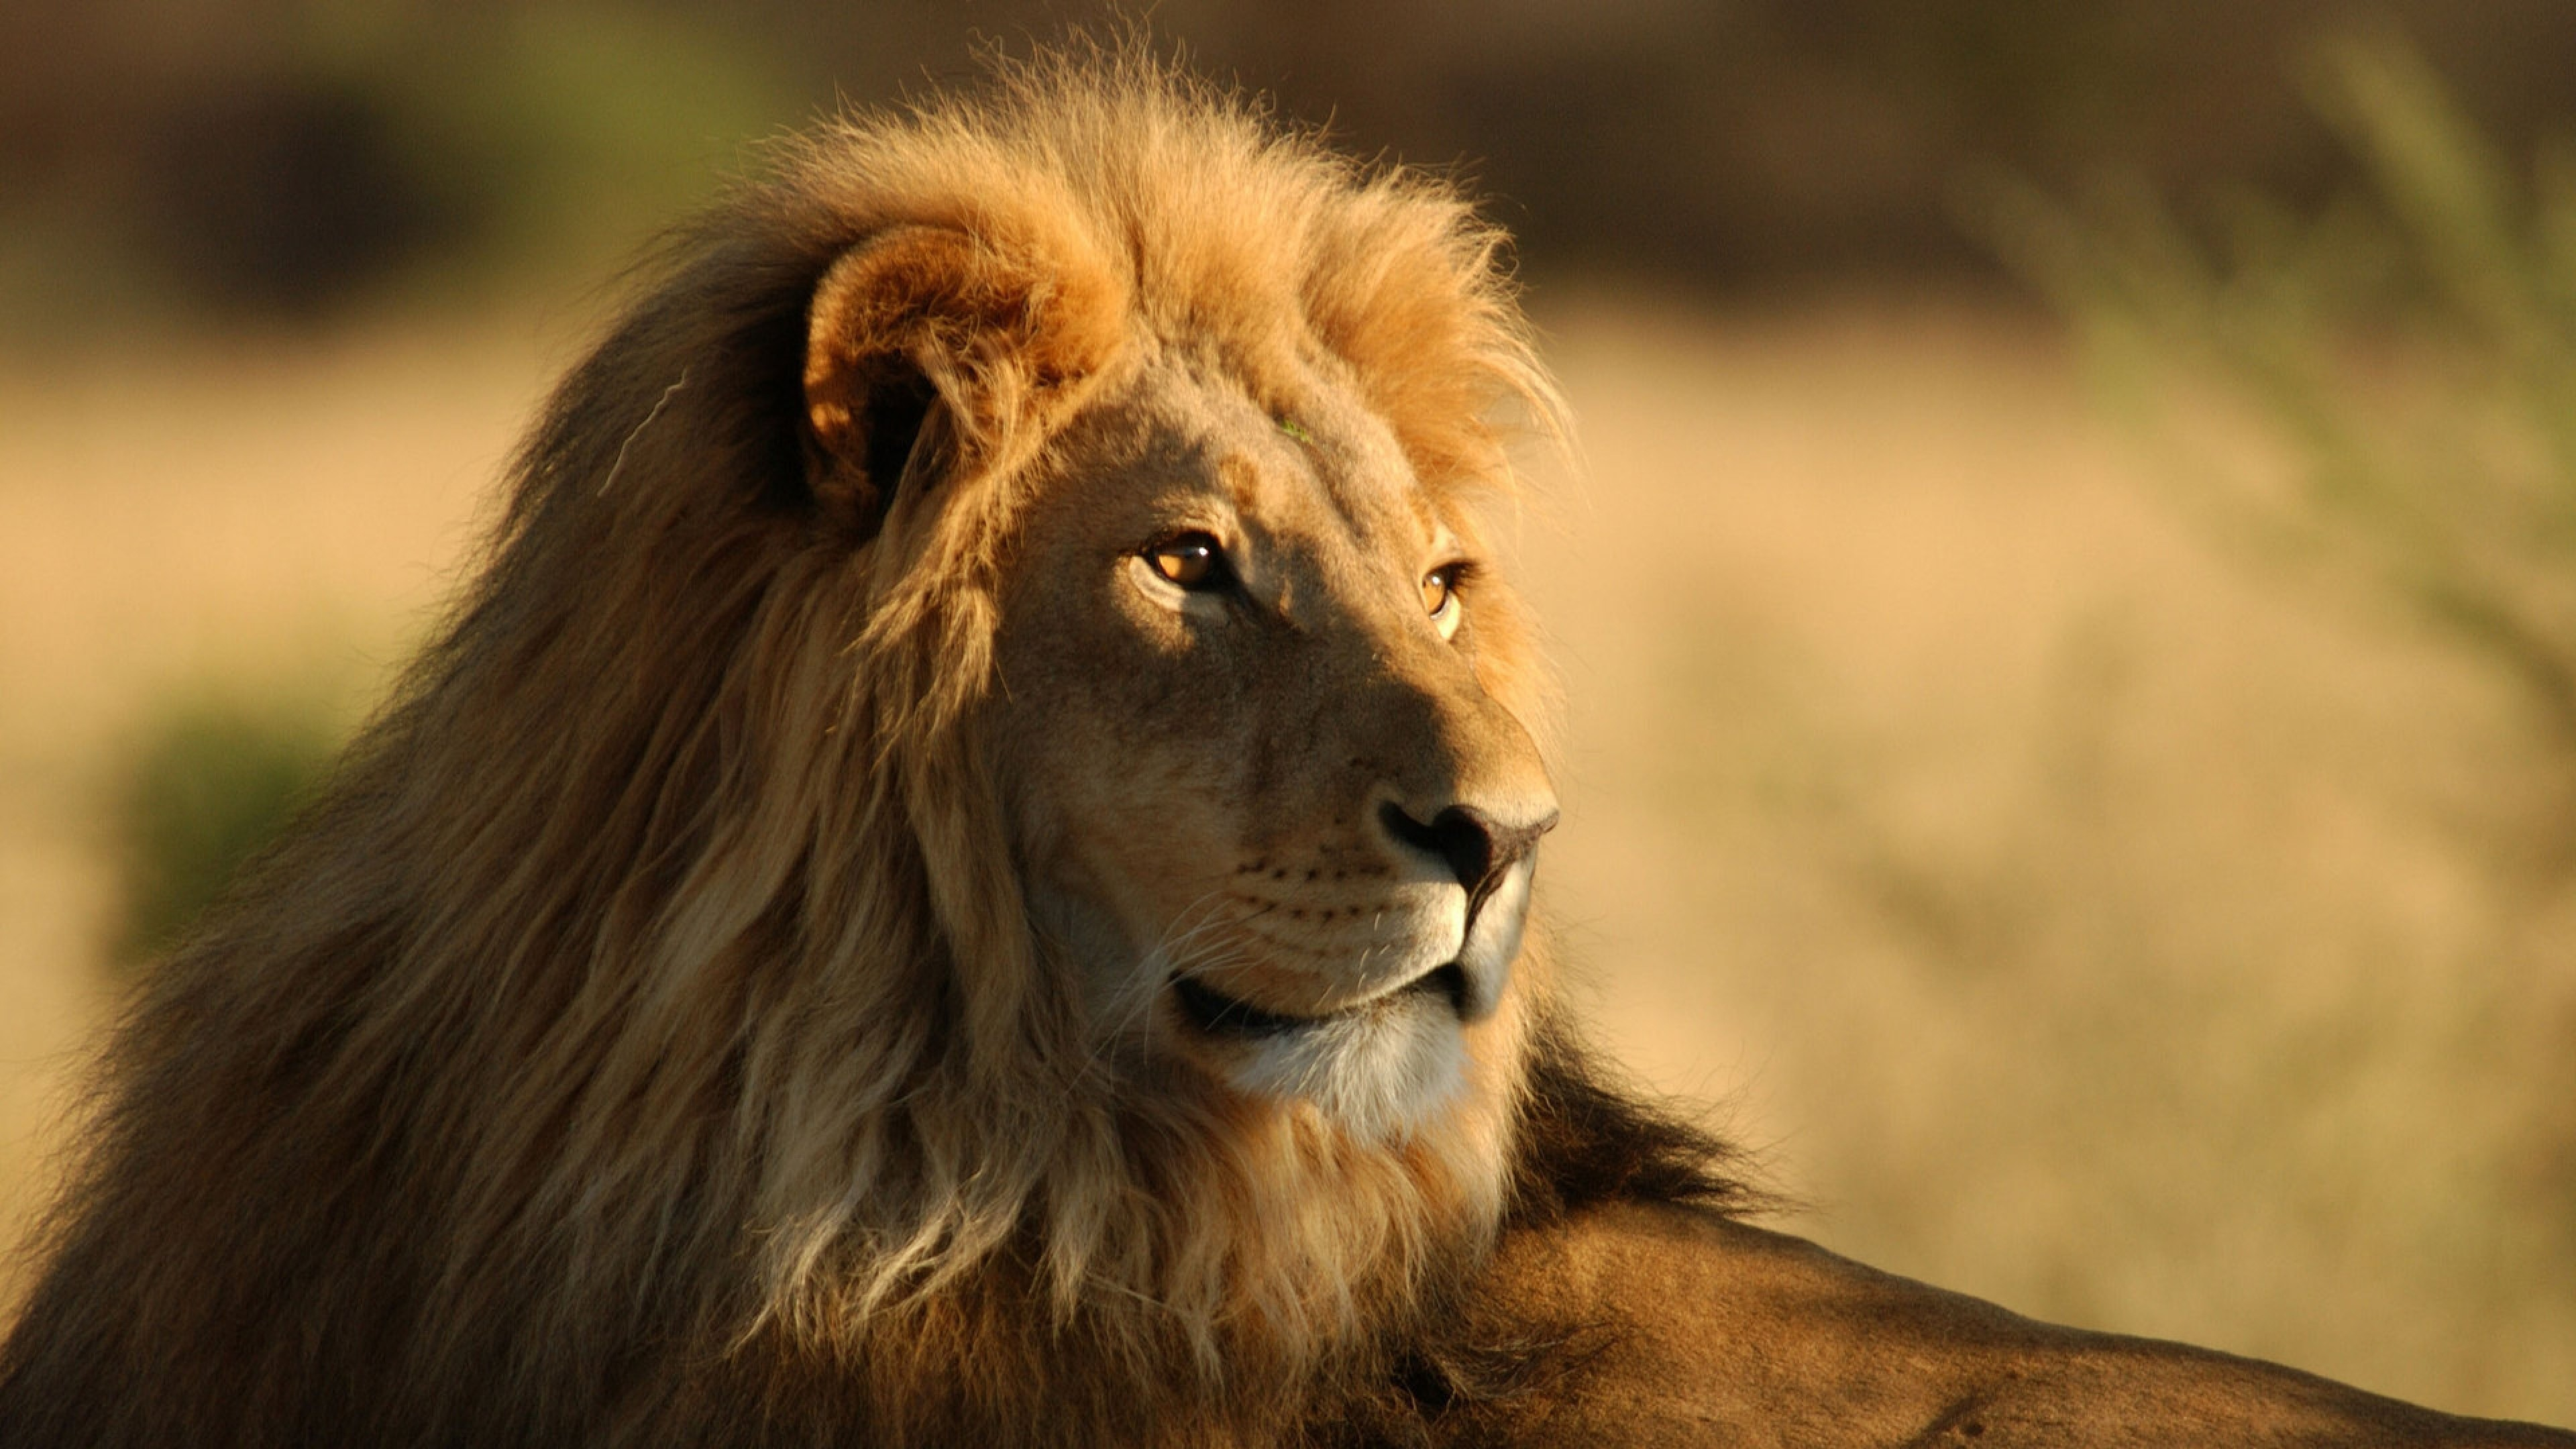 Res: 3840x2160, Animal Wallpapers. Download the following Roaring Lion ...